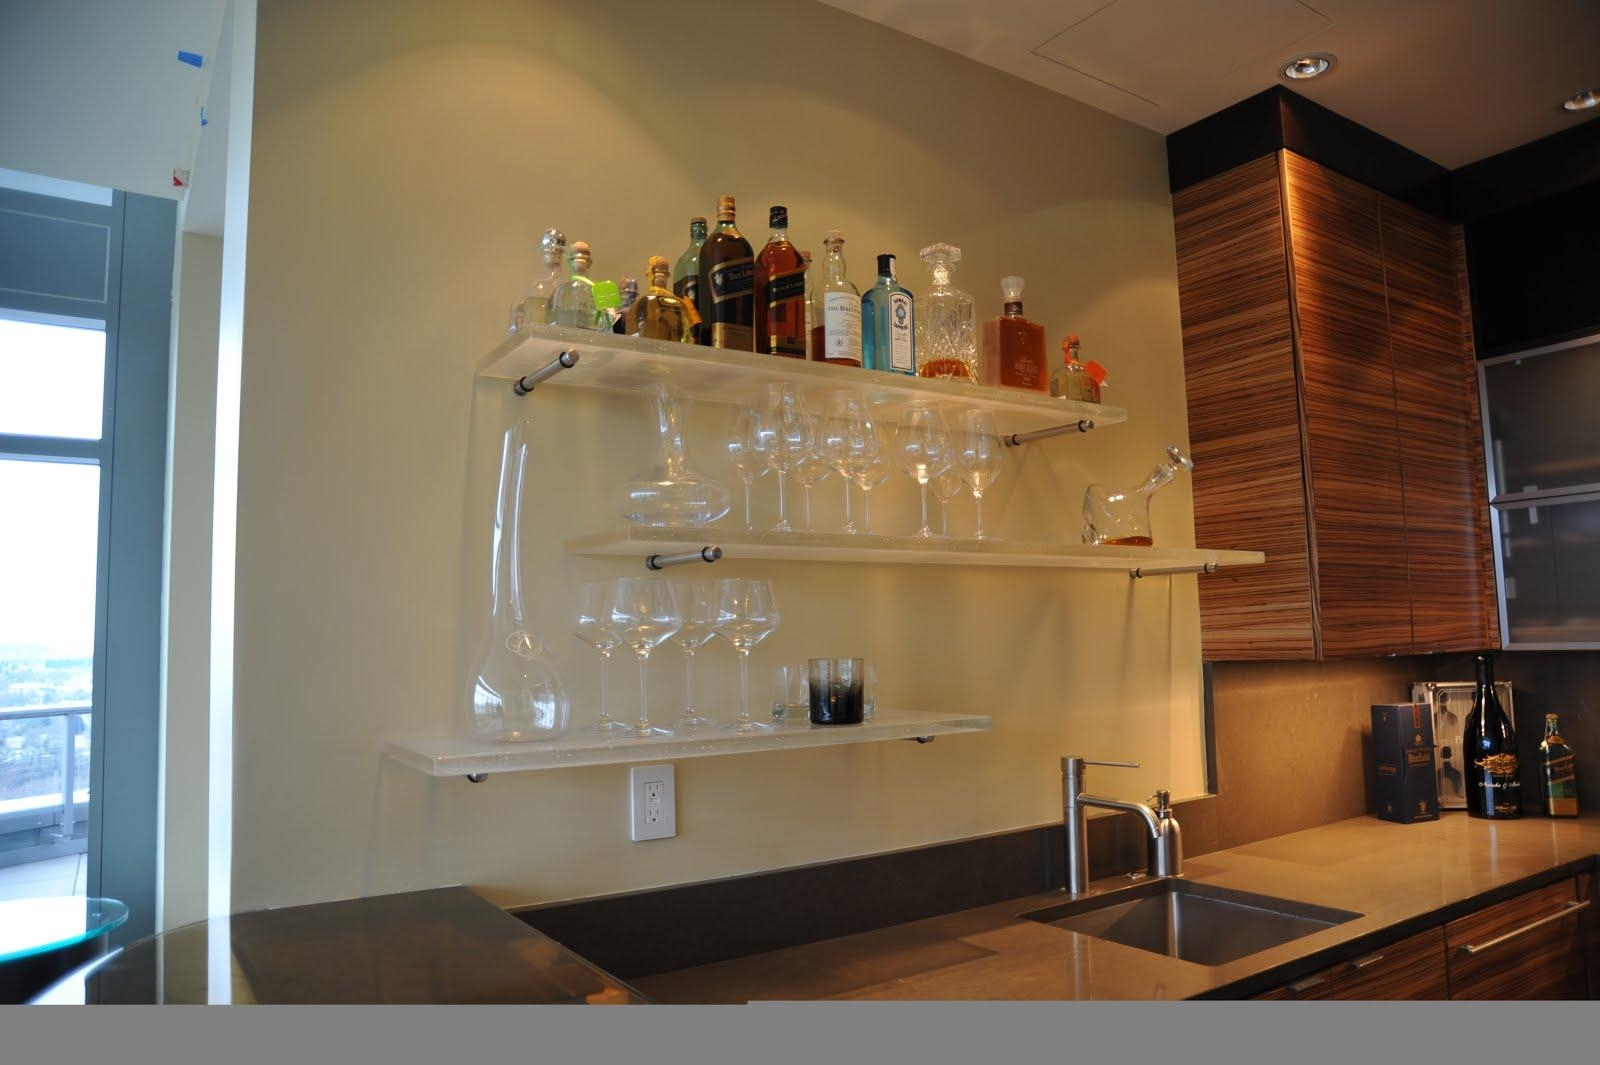 Trailer Park Lounge And Grill Wall Decor Famous Whiskey Room Intended For Glass Shelves For Bar Area (Image 14 of 15)